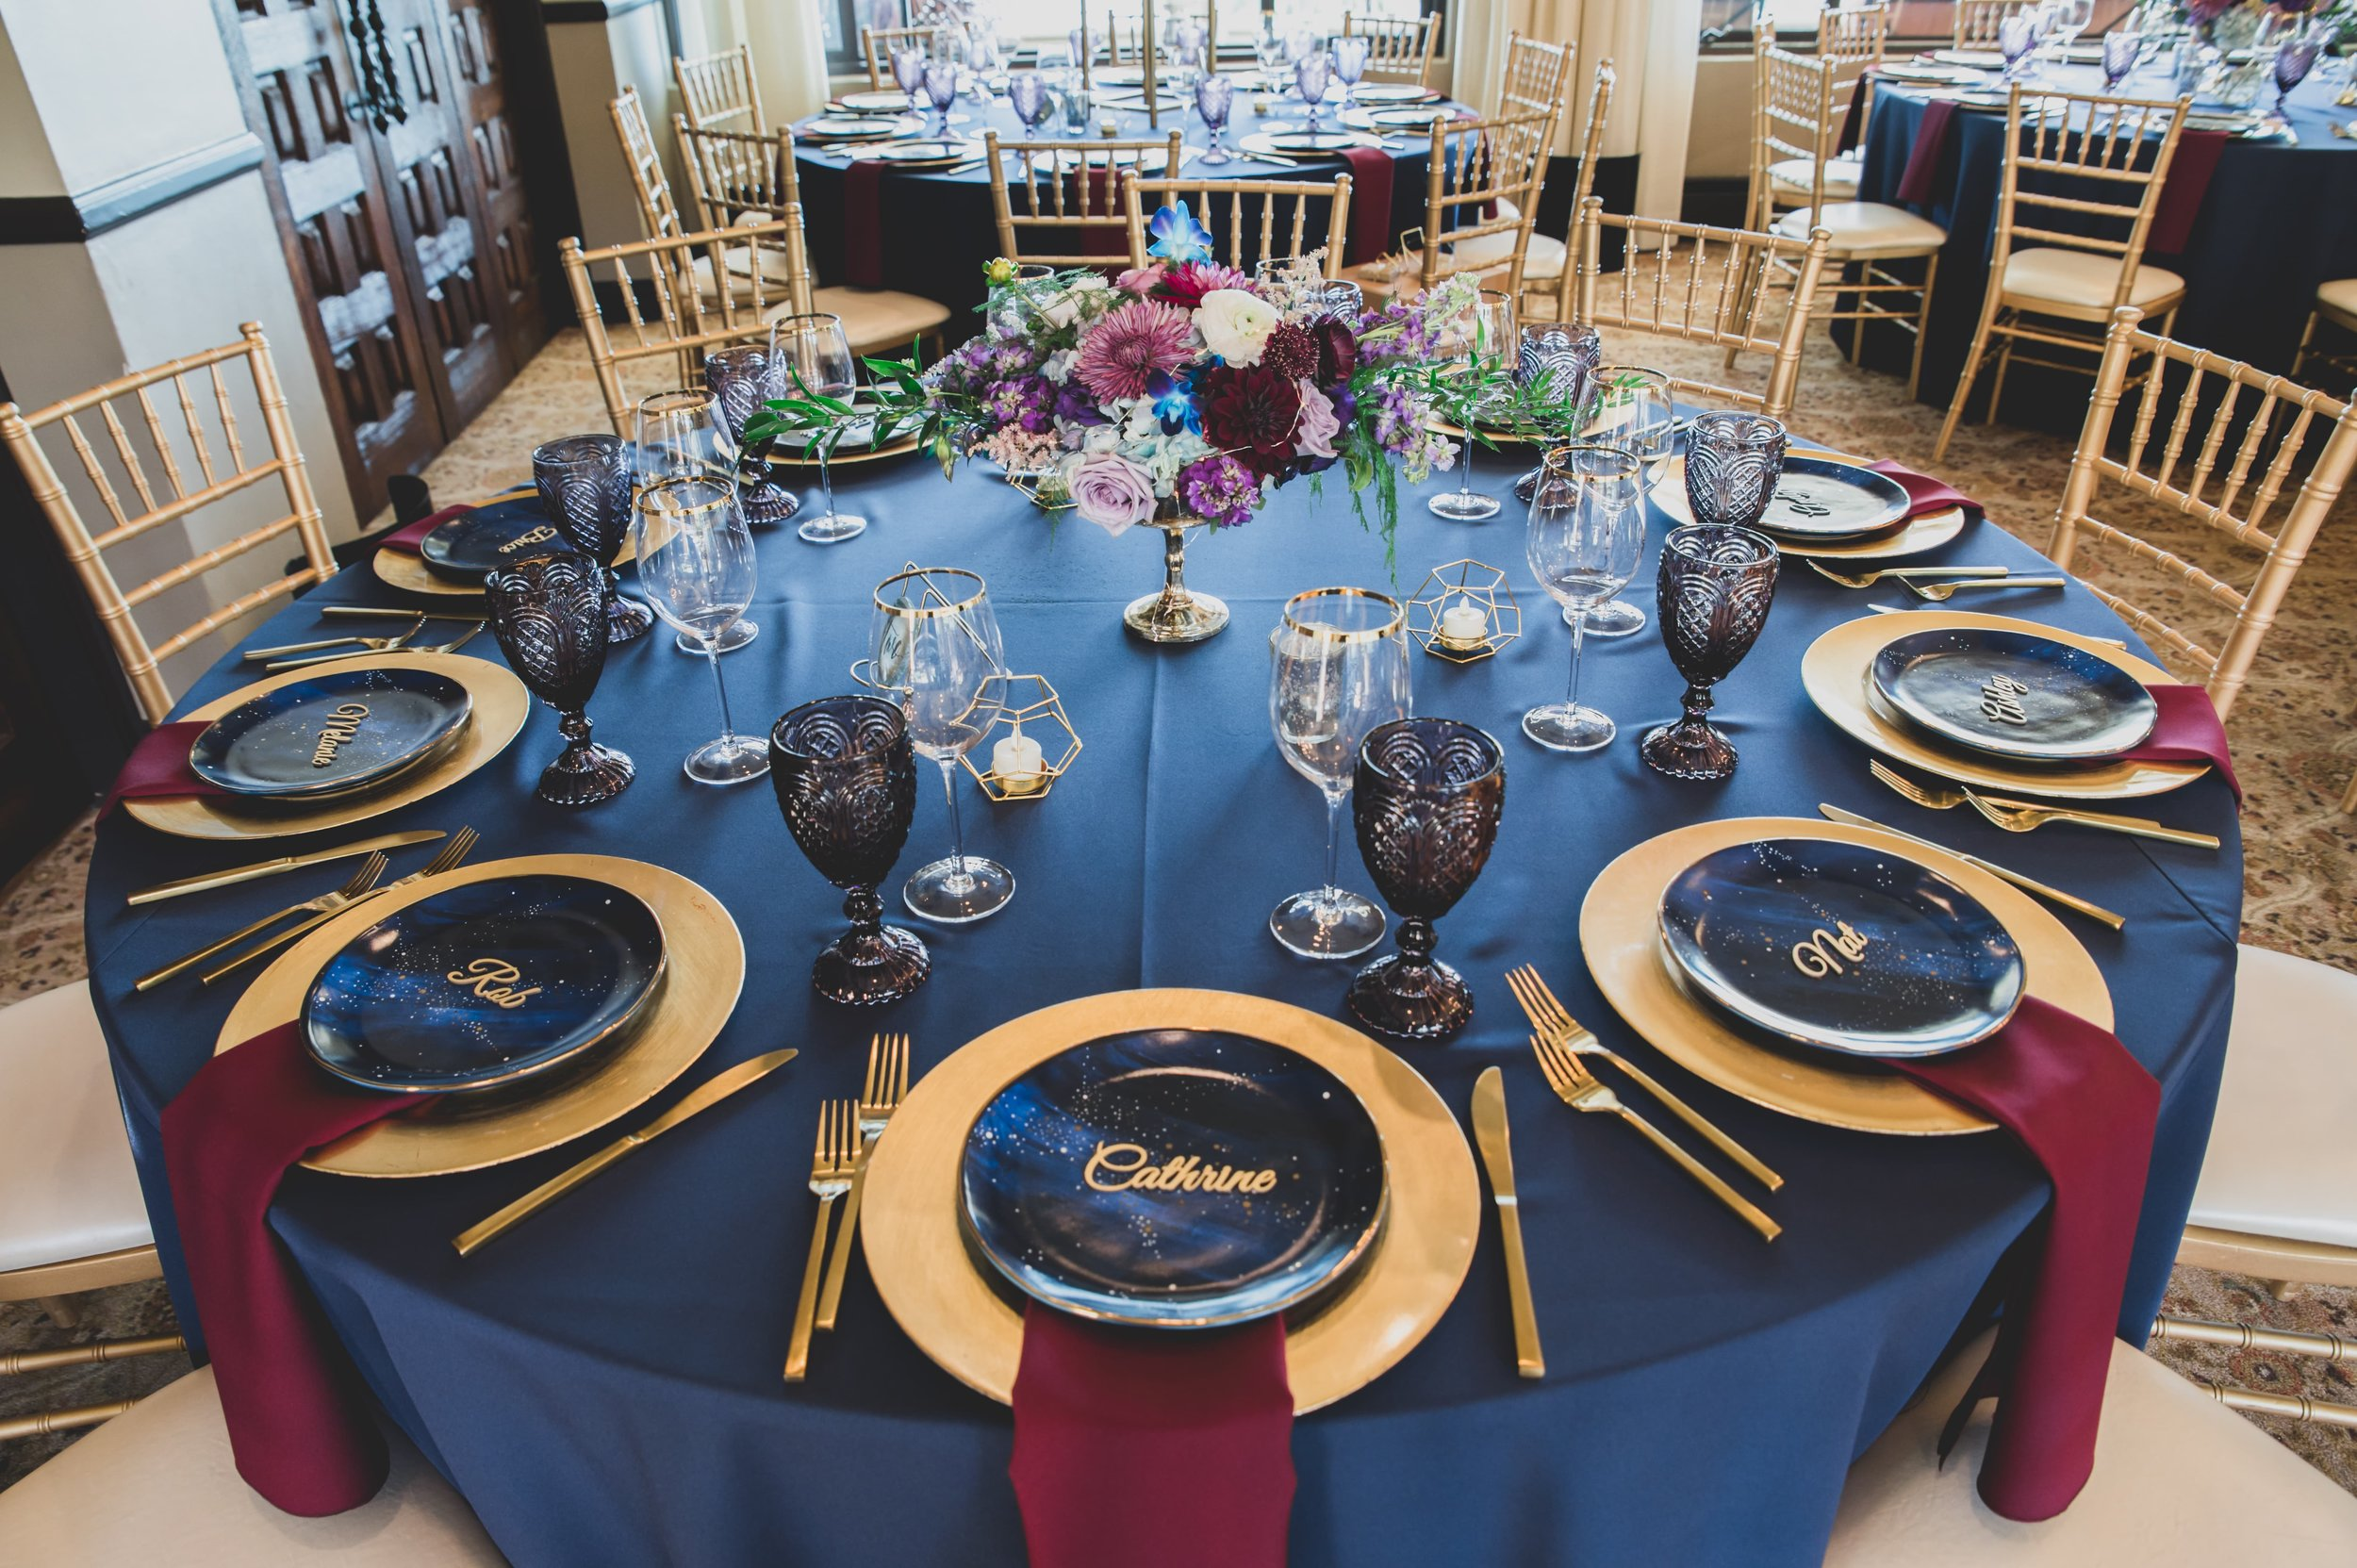 Wedding Photography - Pacific Palisades, CA - Bel Air Bay Club - A guest table in the reception hall decorated with navy blue, gold, and a colorful floral centerpiece.